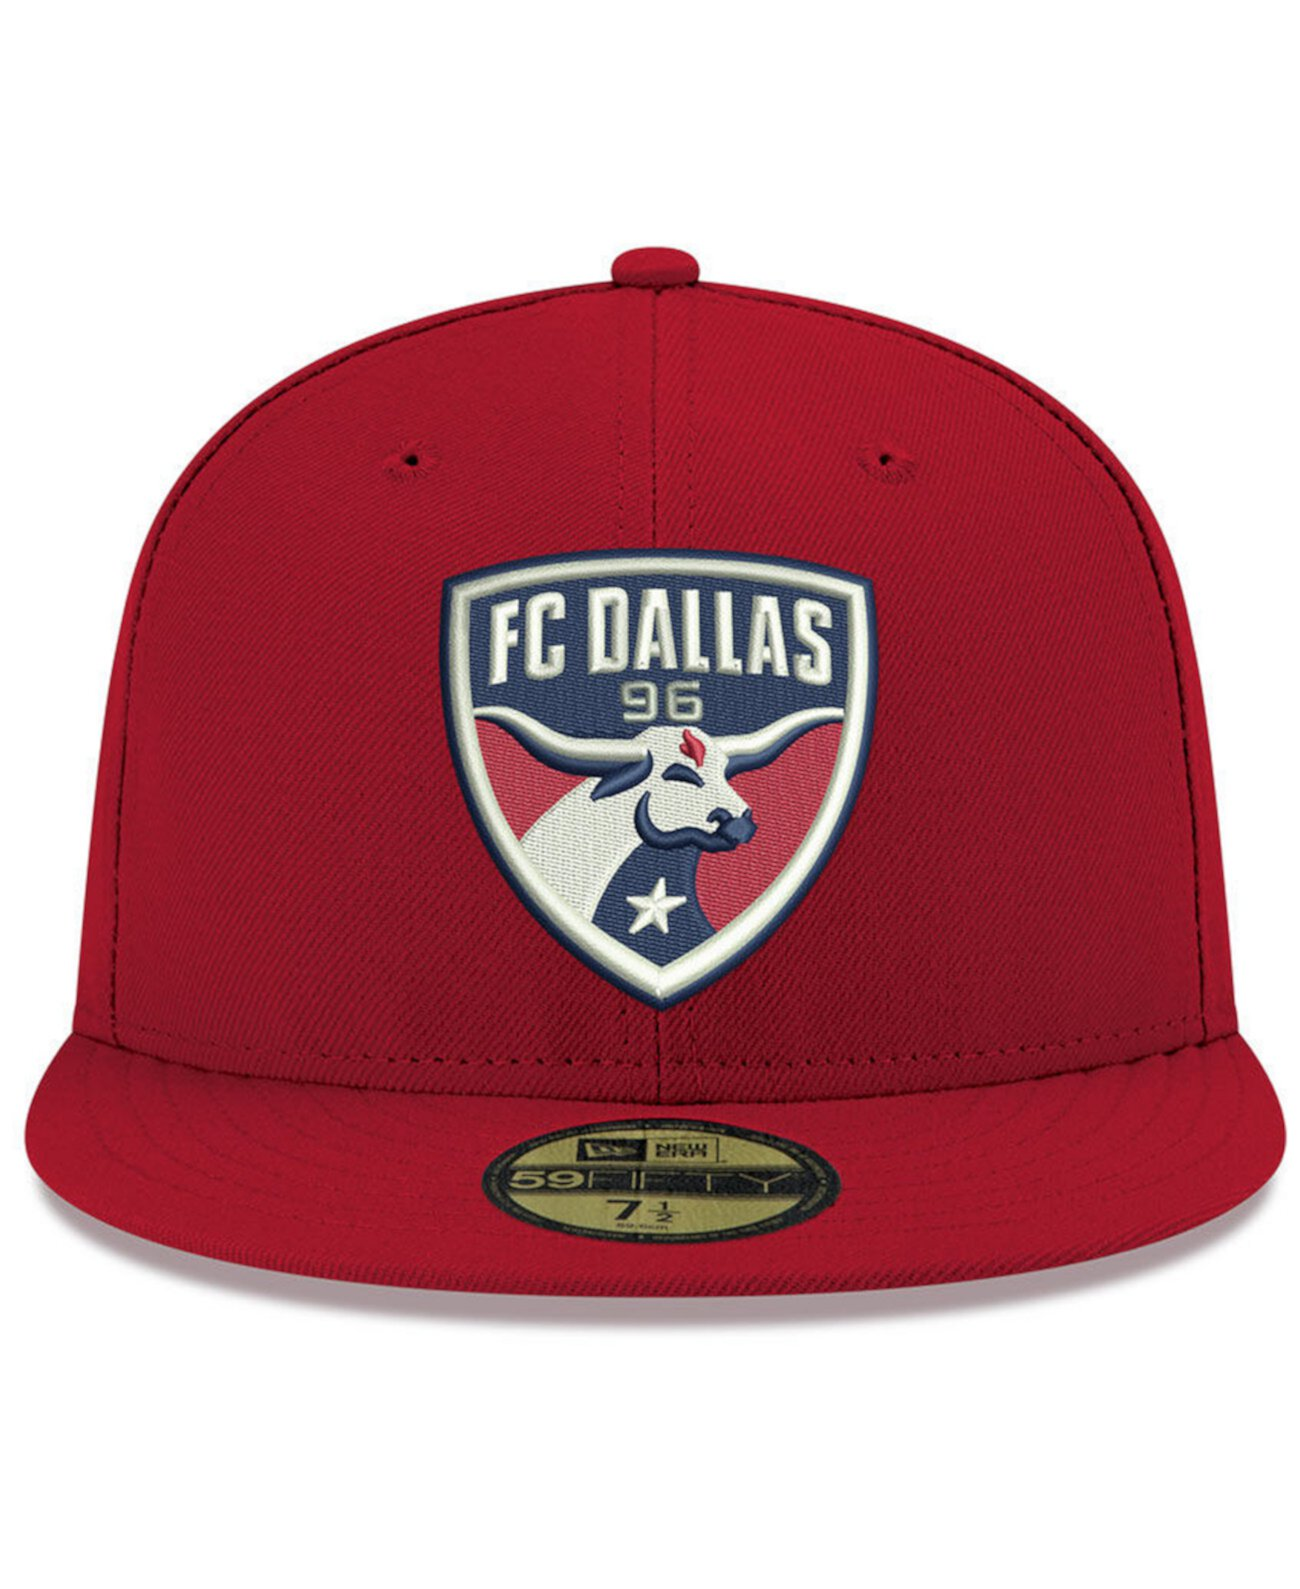 ФК Даллас Core 59FIFTY-FITTED Cap New Era